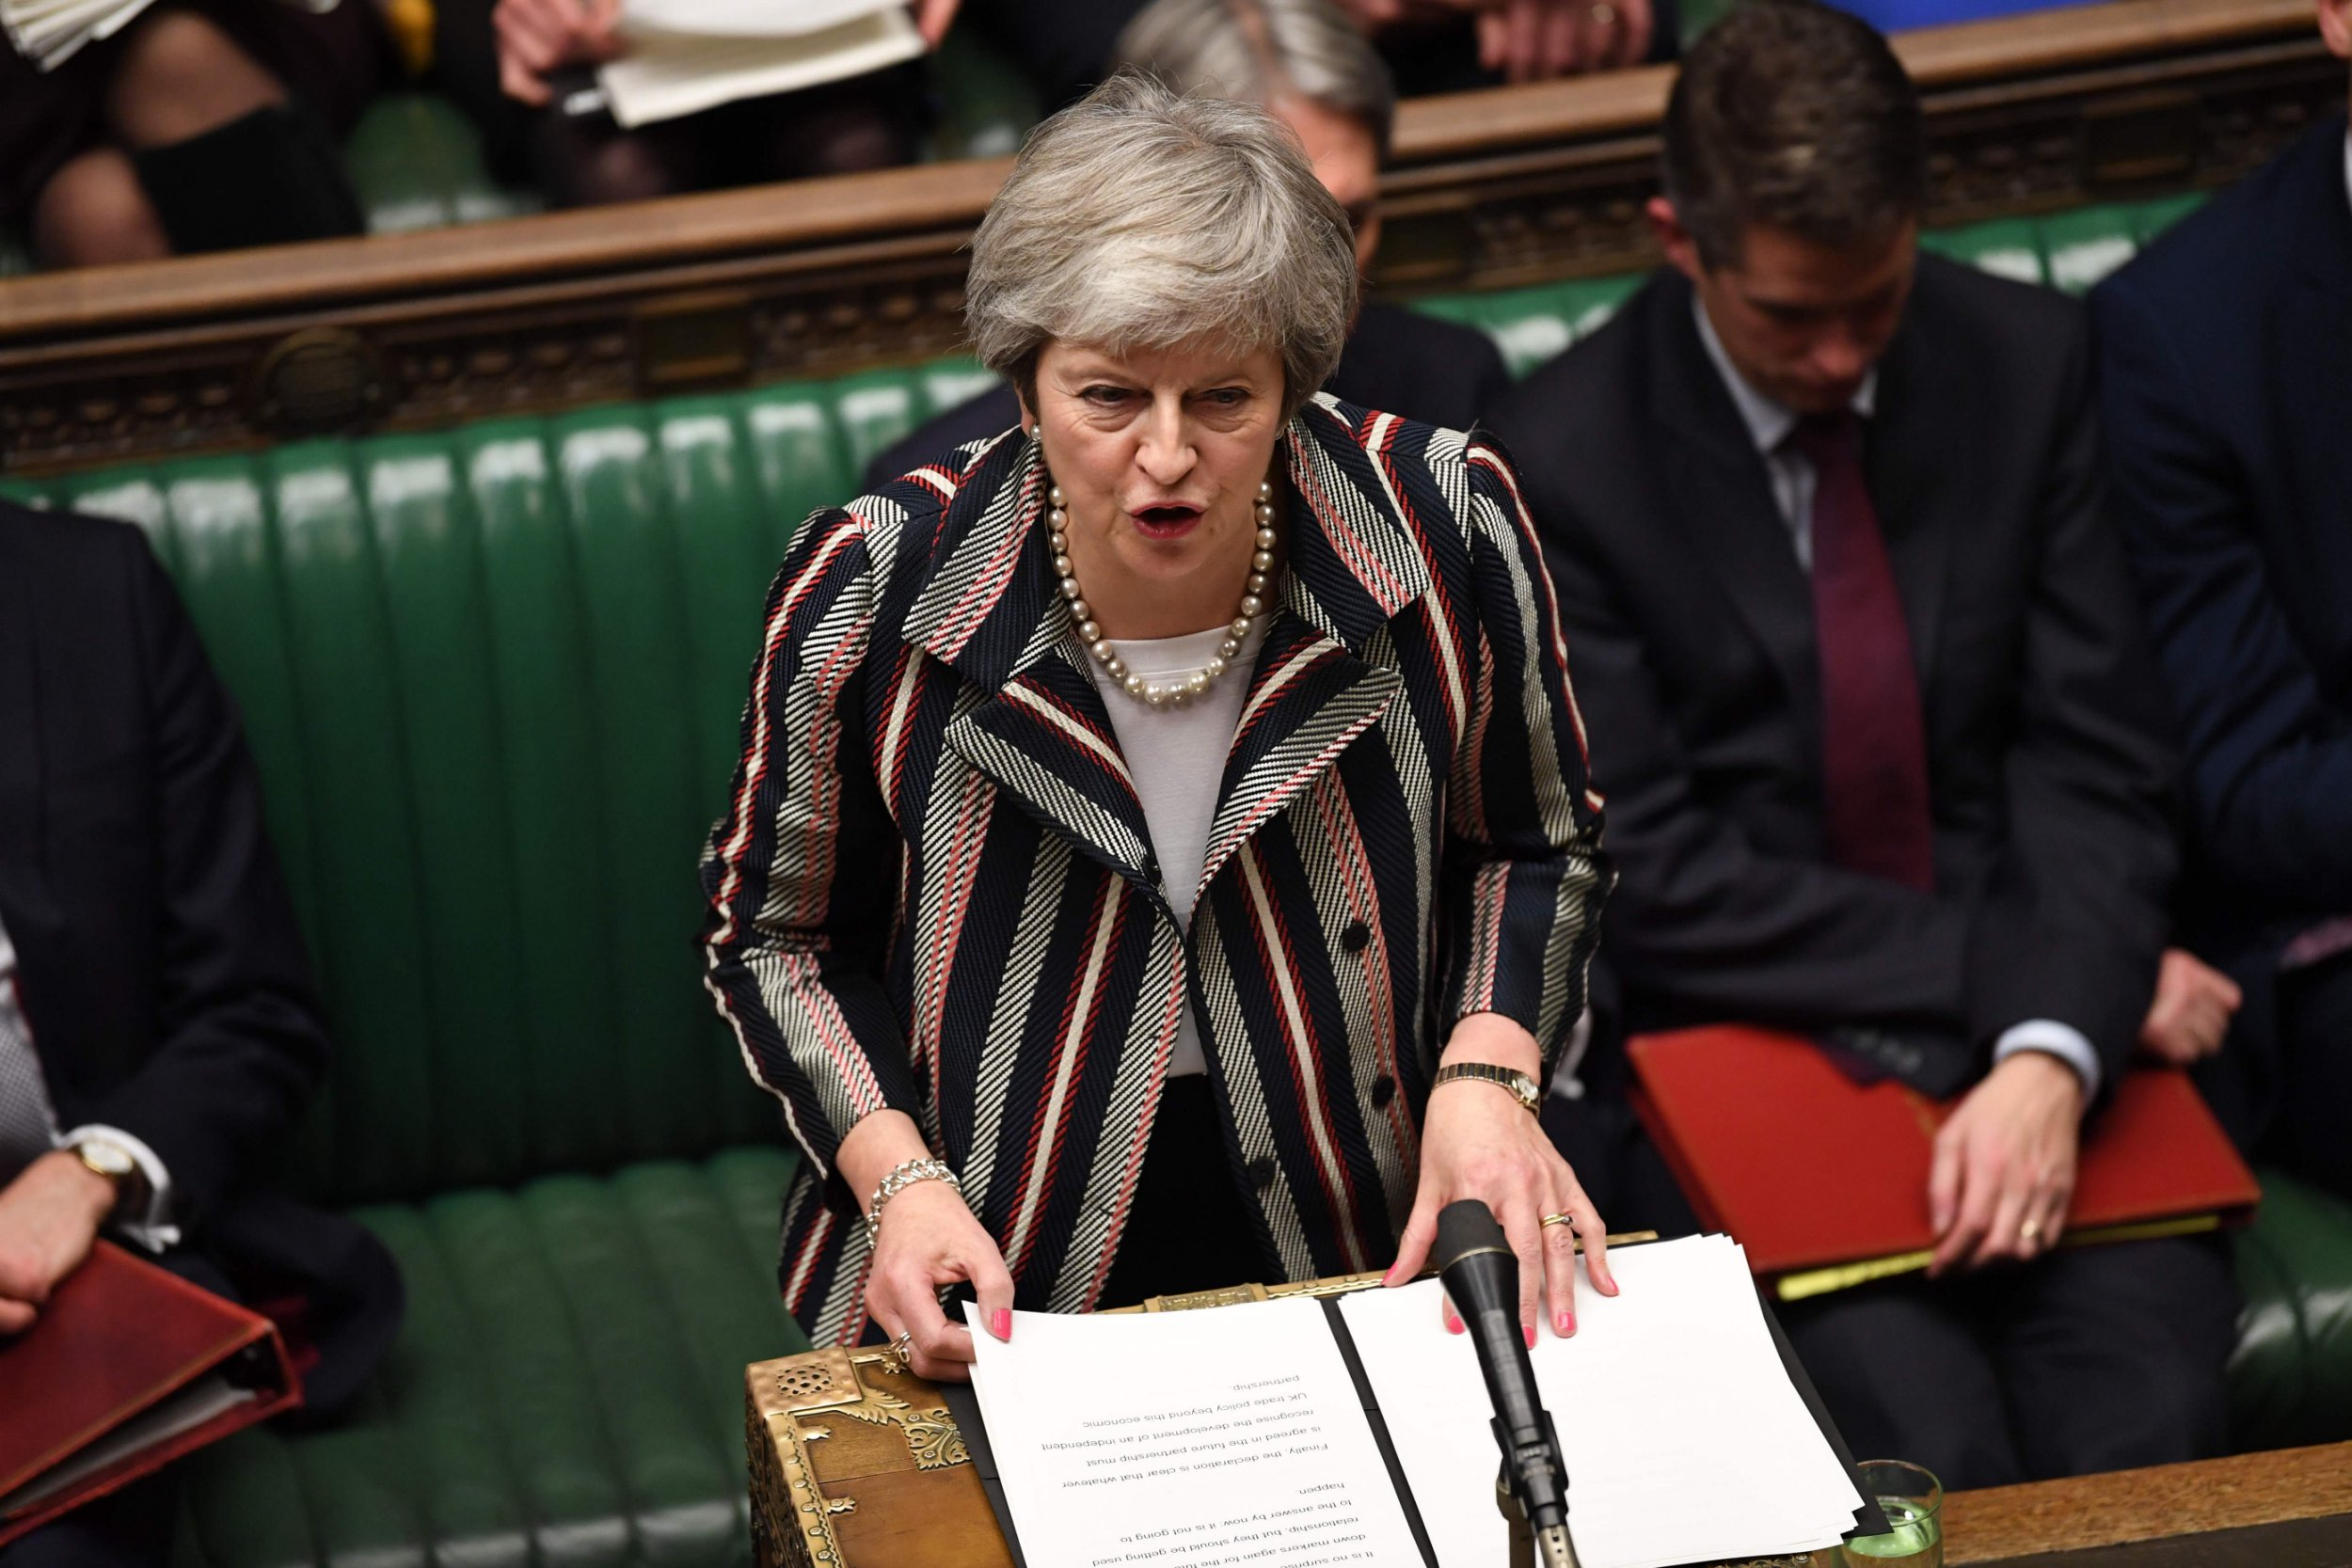 """A handout photograph released by the UK Parliament shows Britain's Prime Minister Theresa May giving a statement to the House of Commons in London on November 26, 2018, to update parliament on the newly-agreed Brexit deal. - Theresa May will convene her cabinet and update parliament on the newly-agreed Brexit deal on Monday, as the embattled British prime minister begins the tricky mission of selling the plan to a sceptical country. (Photo by Jessica TAYLOR / UK PARLIAMENT / AFP) / RESTRICTED TO EDITORIAL USE - NO USE FOR ENTERTAINMENT, SATIRICAL, ADVERTISING PURPOSES - MANDATORY CREDIT """" AFP PHOTO / Jessica Taylor /UK Parliament""""JESSICA TAYLOR/AFP/Getty Images"""